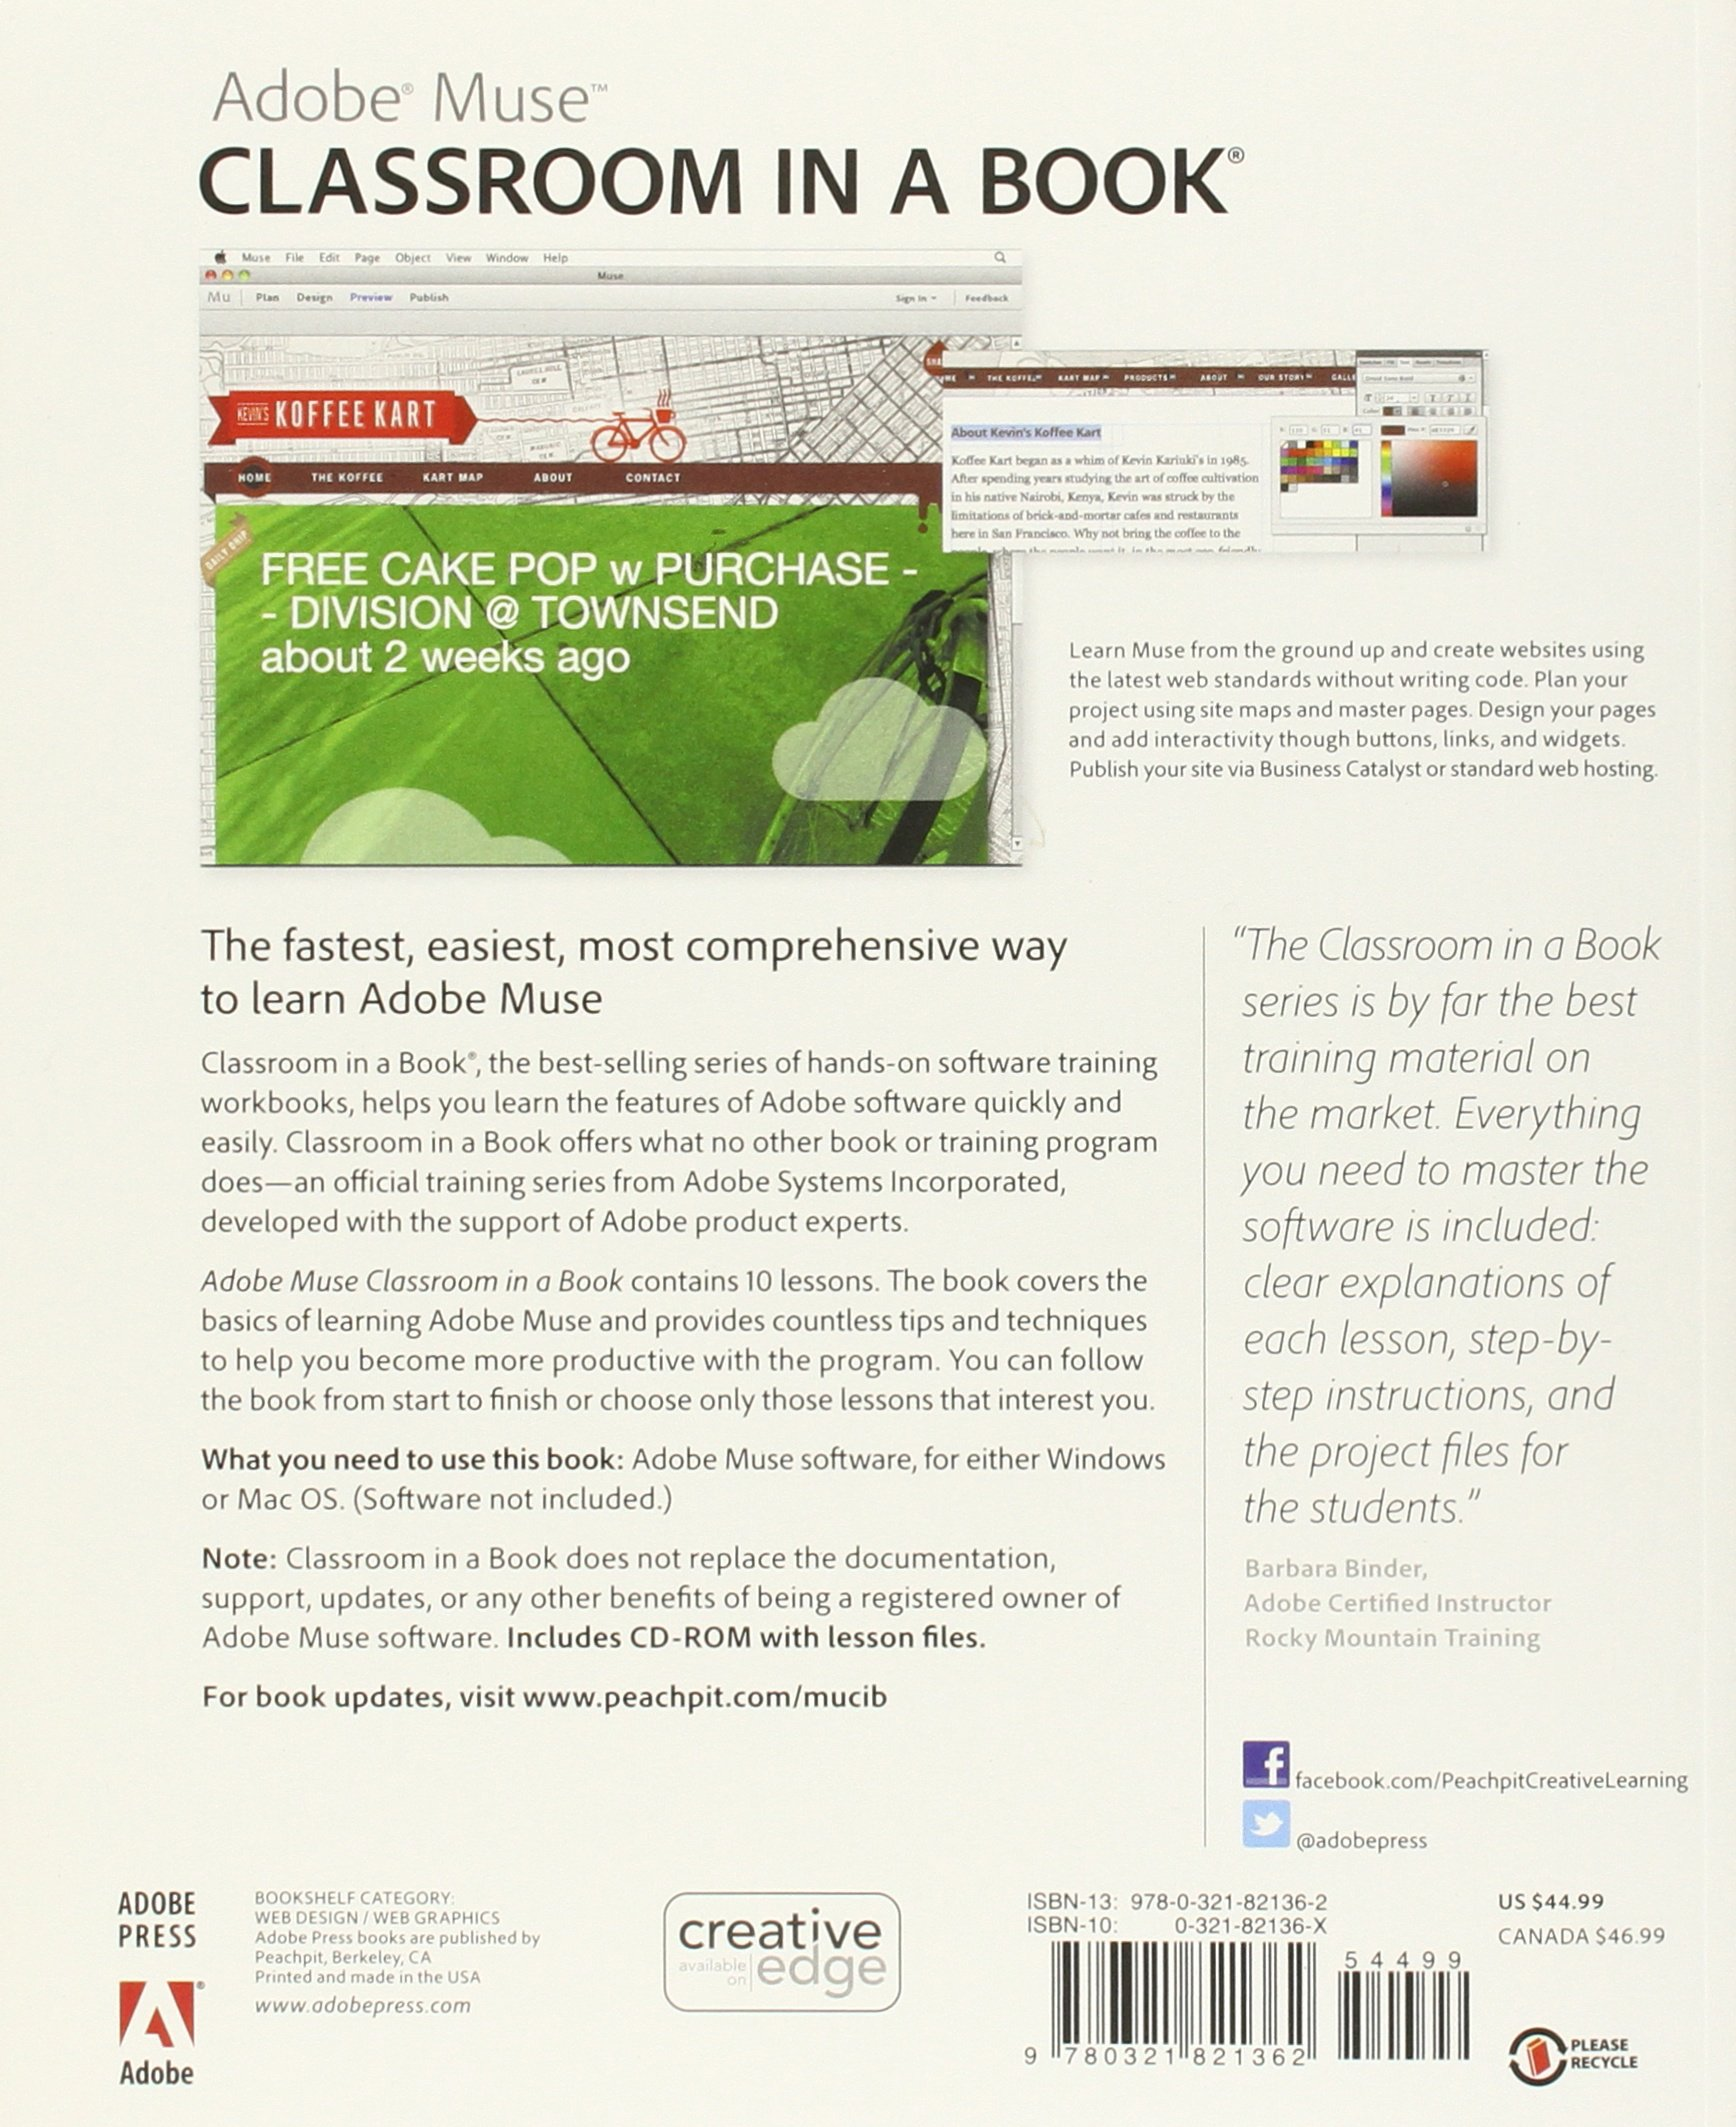 Adobe Muse Classroom In A Book Lesson Files